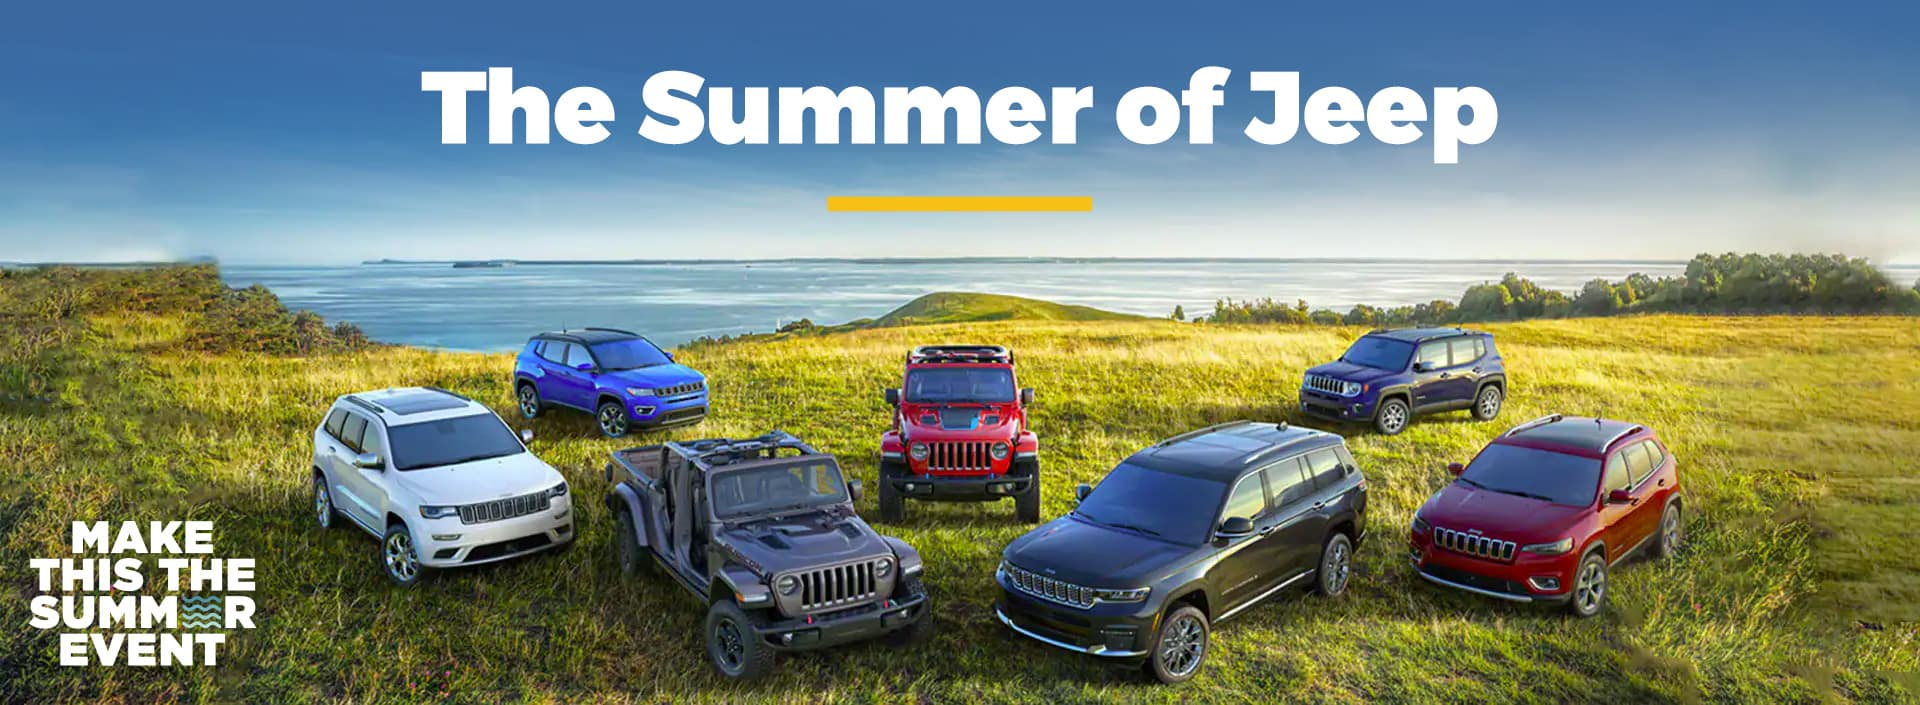 The Summer of Jeep